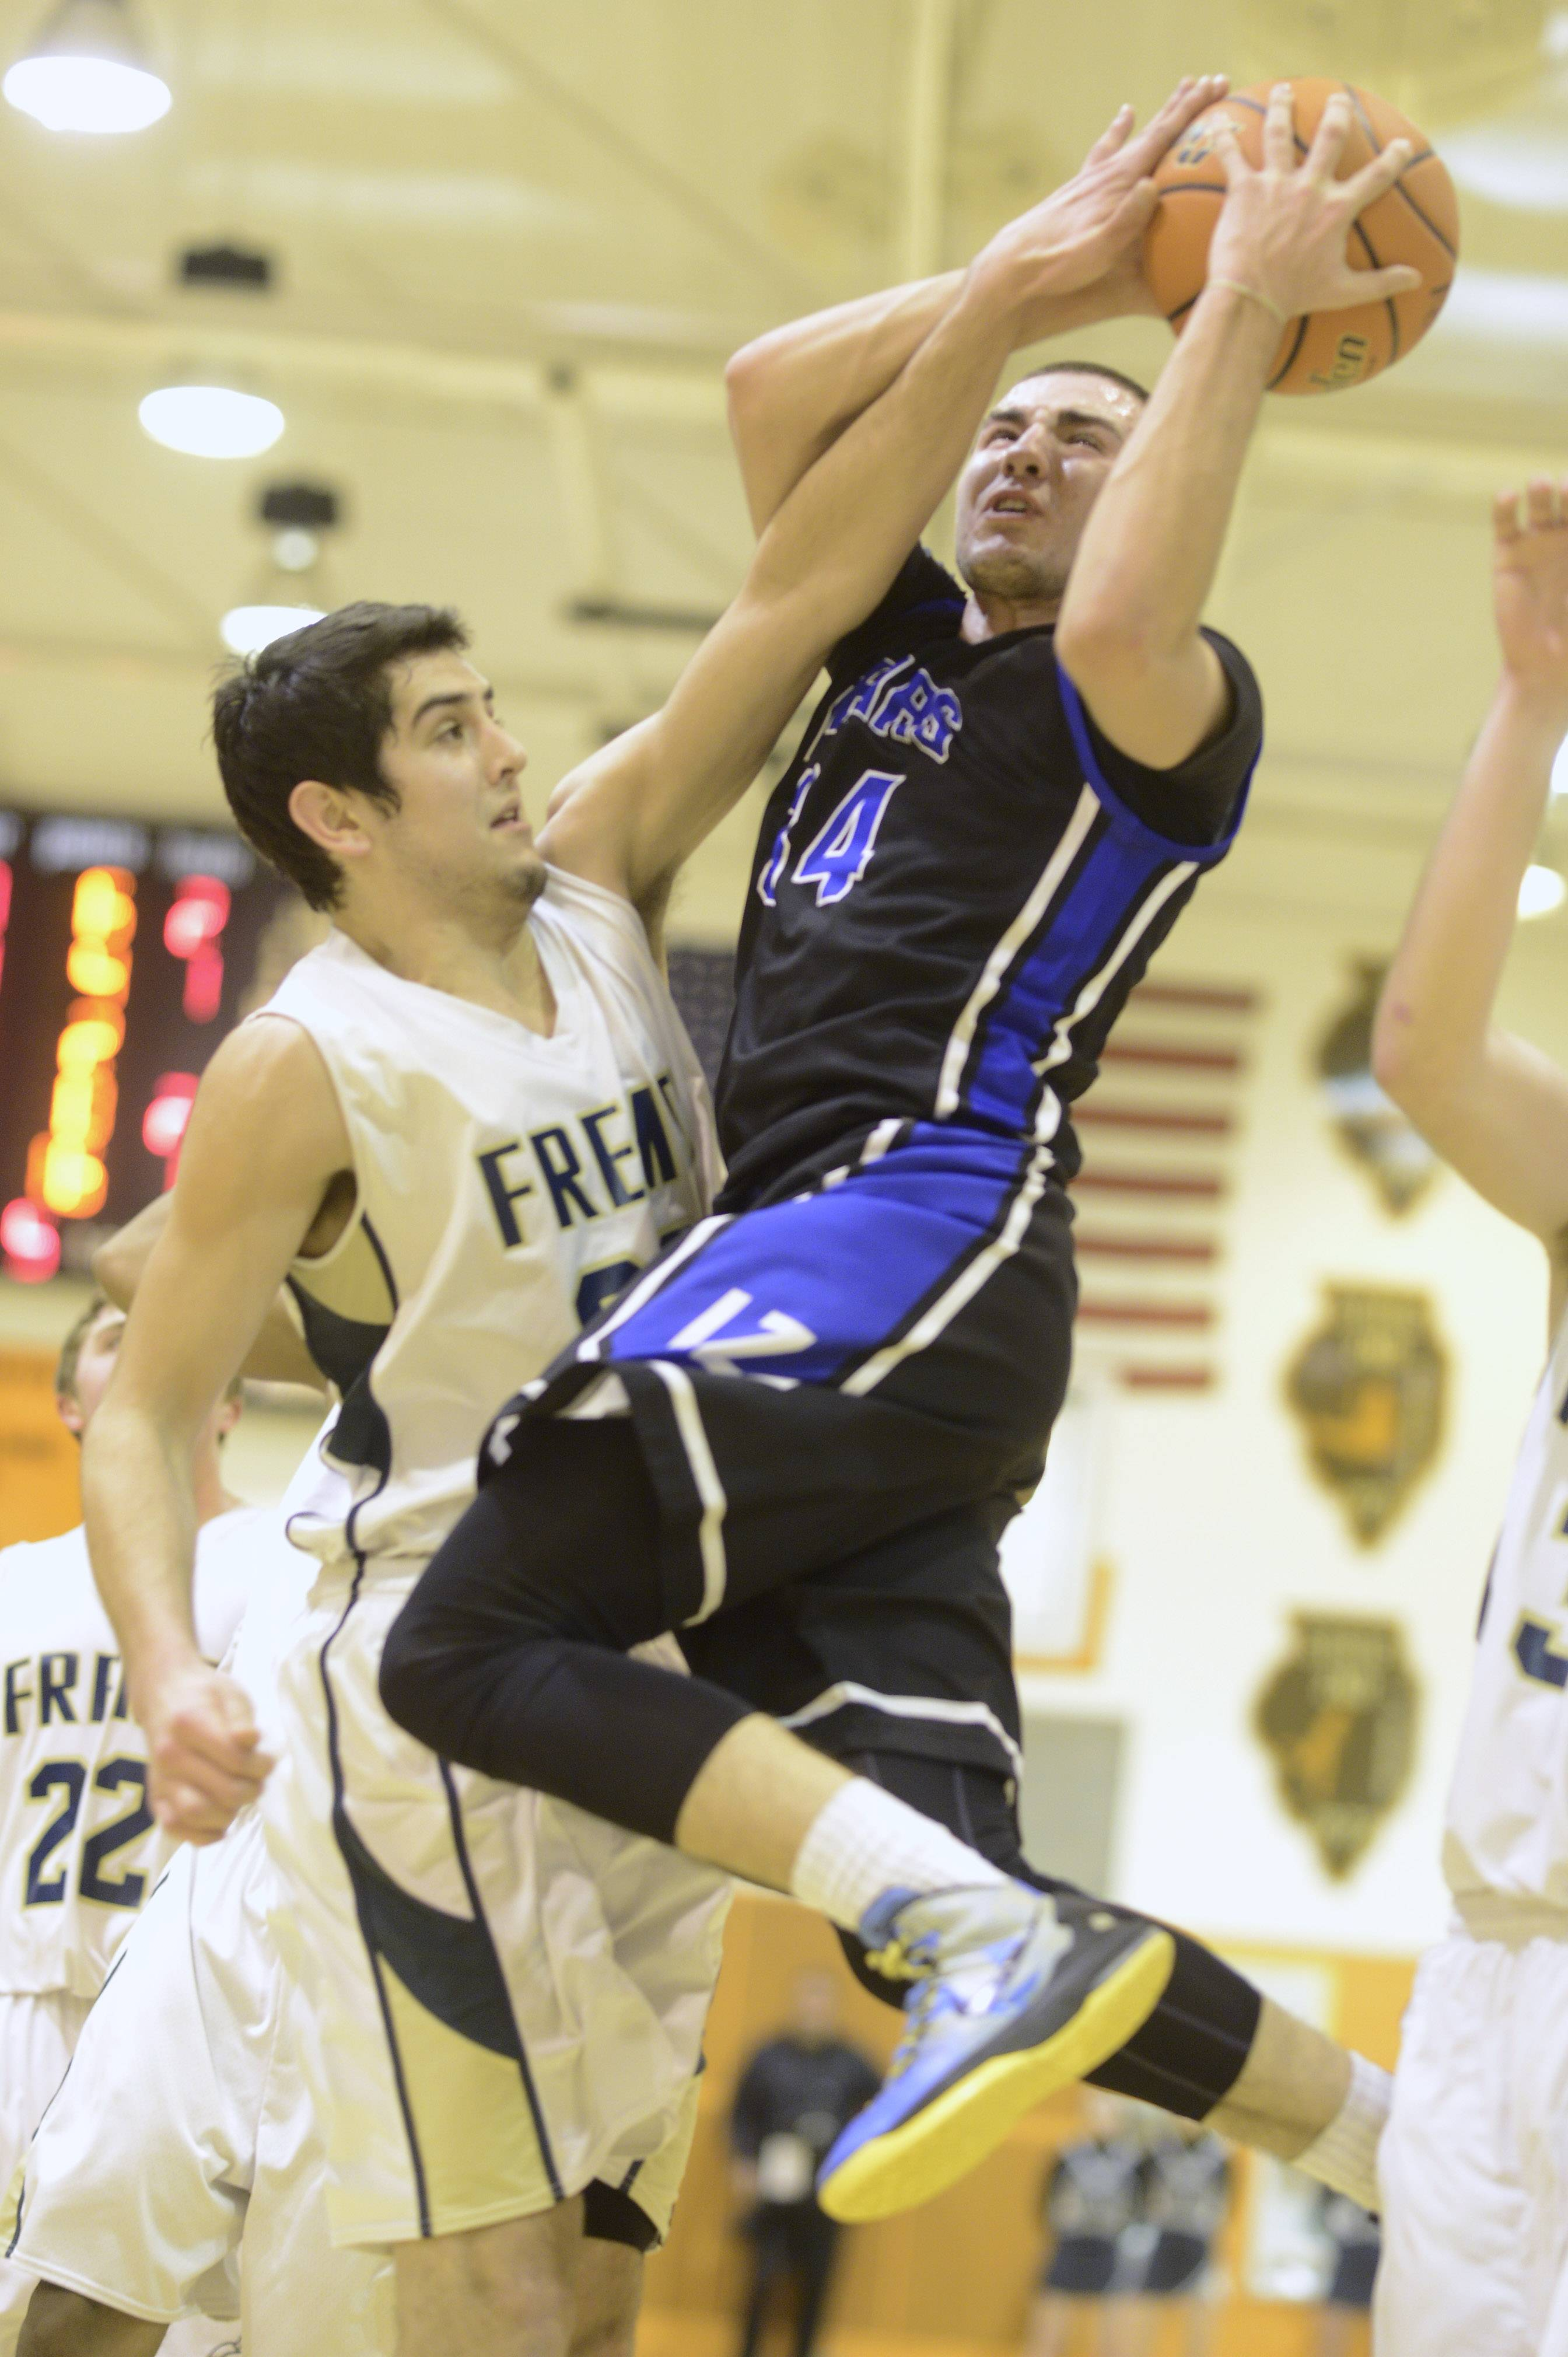 Lake Zurich's Mike Travlos, right, goes strong to the basket against Fremd's Matthew Ochoa.